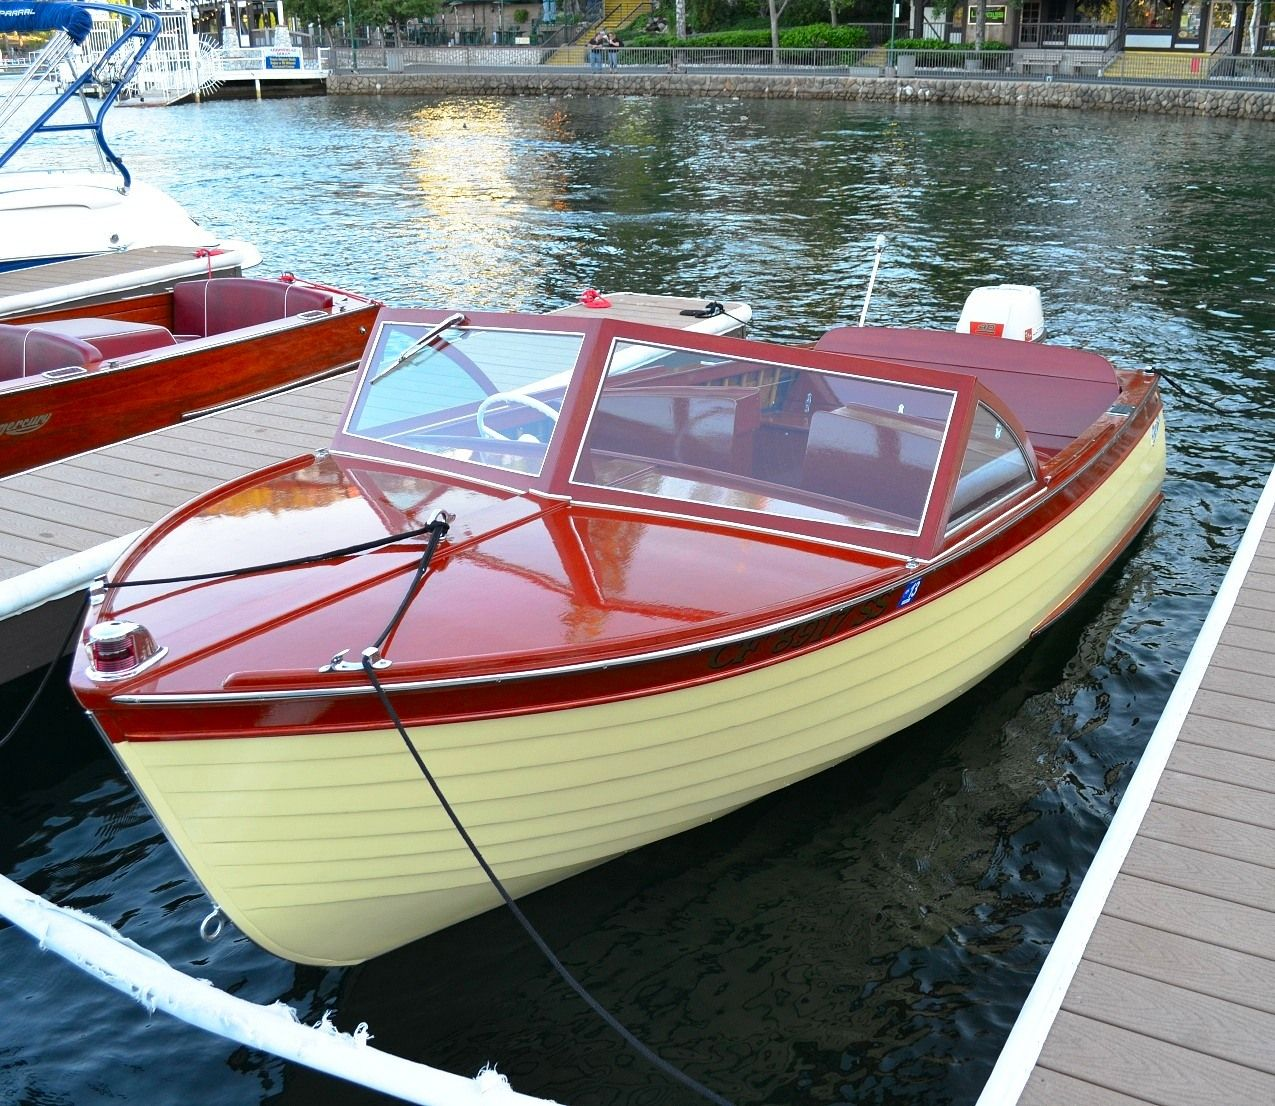 Lyman Boat Wiring Diagram : Lyman boat wiring diagram images sample